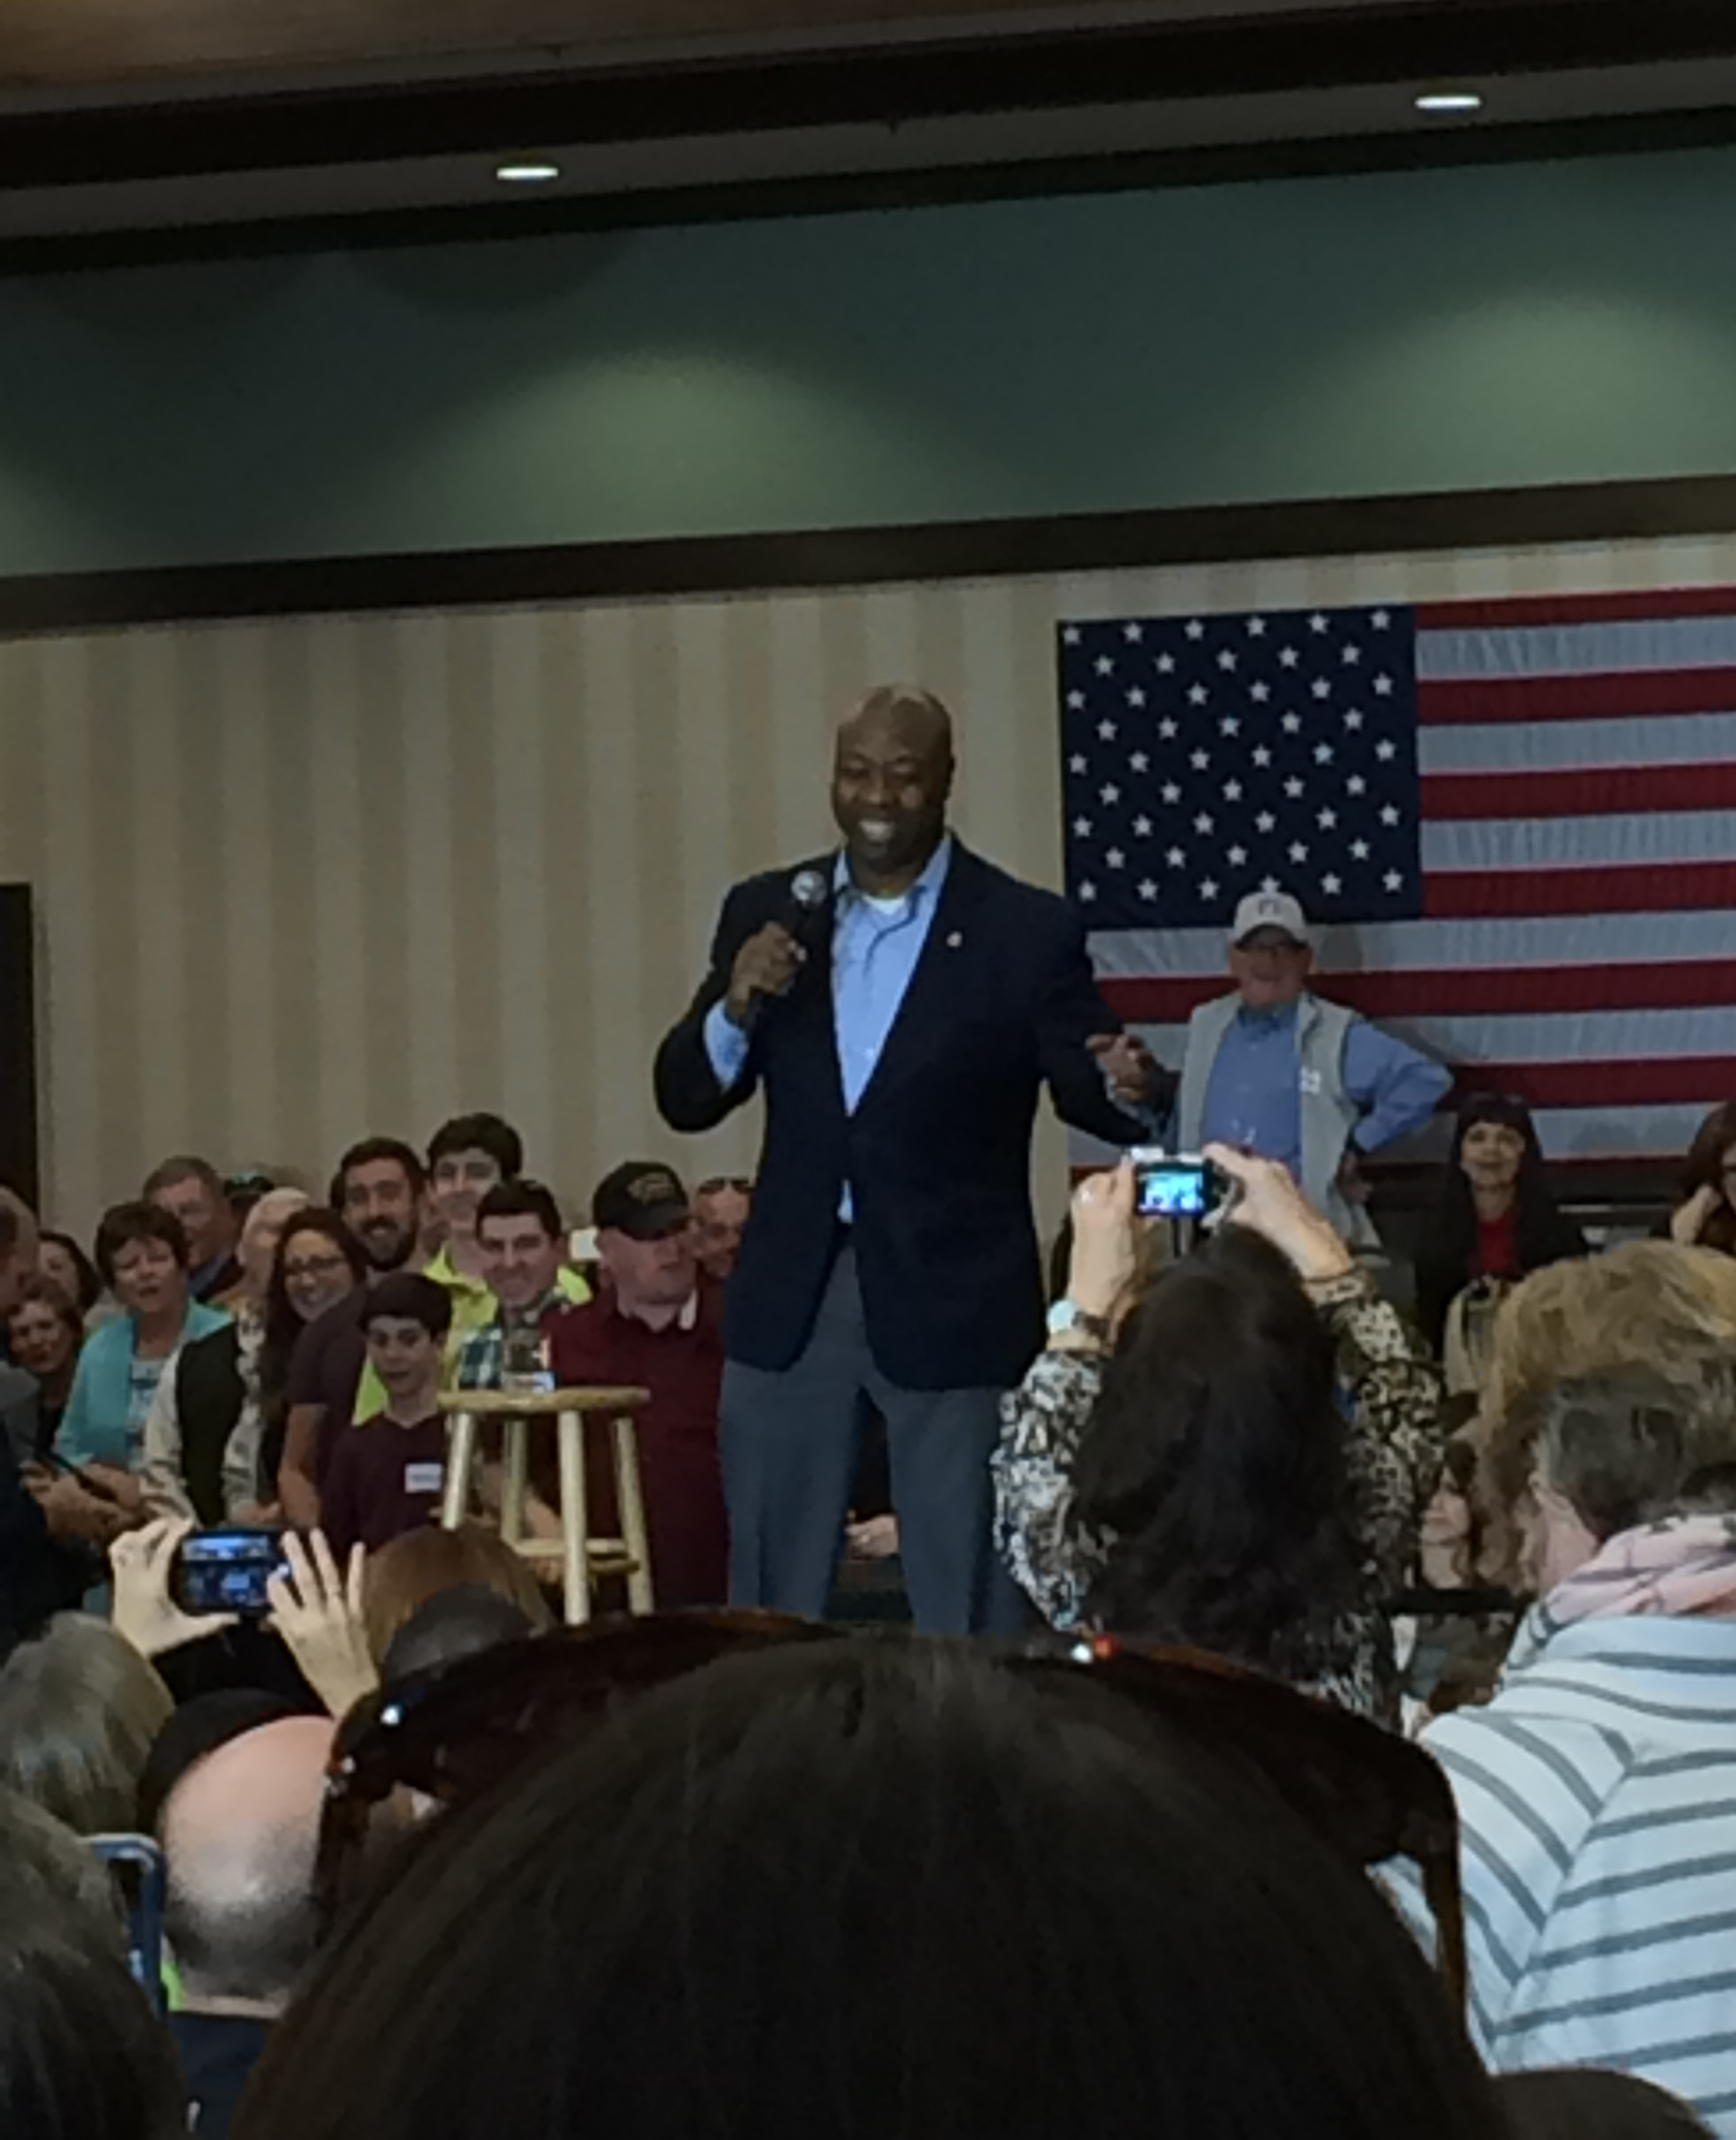 A photo I took of Senator Tim Scott tonight. The guy could really talk!